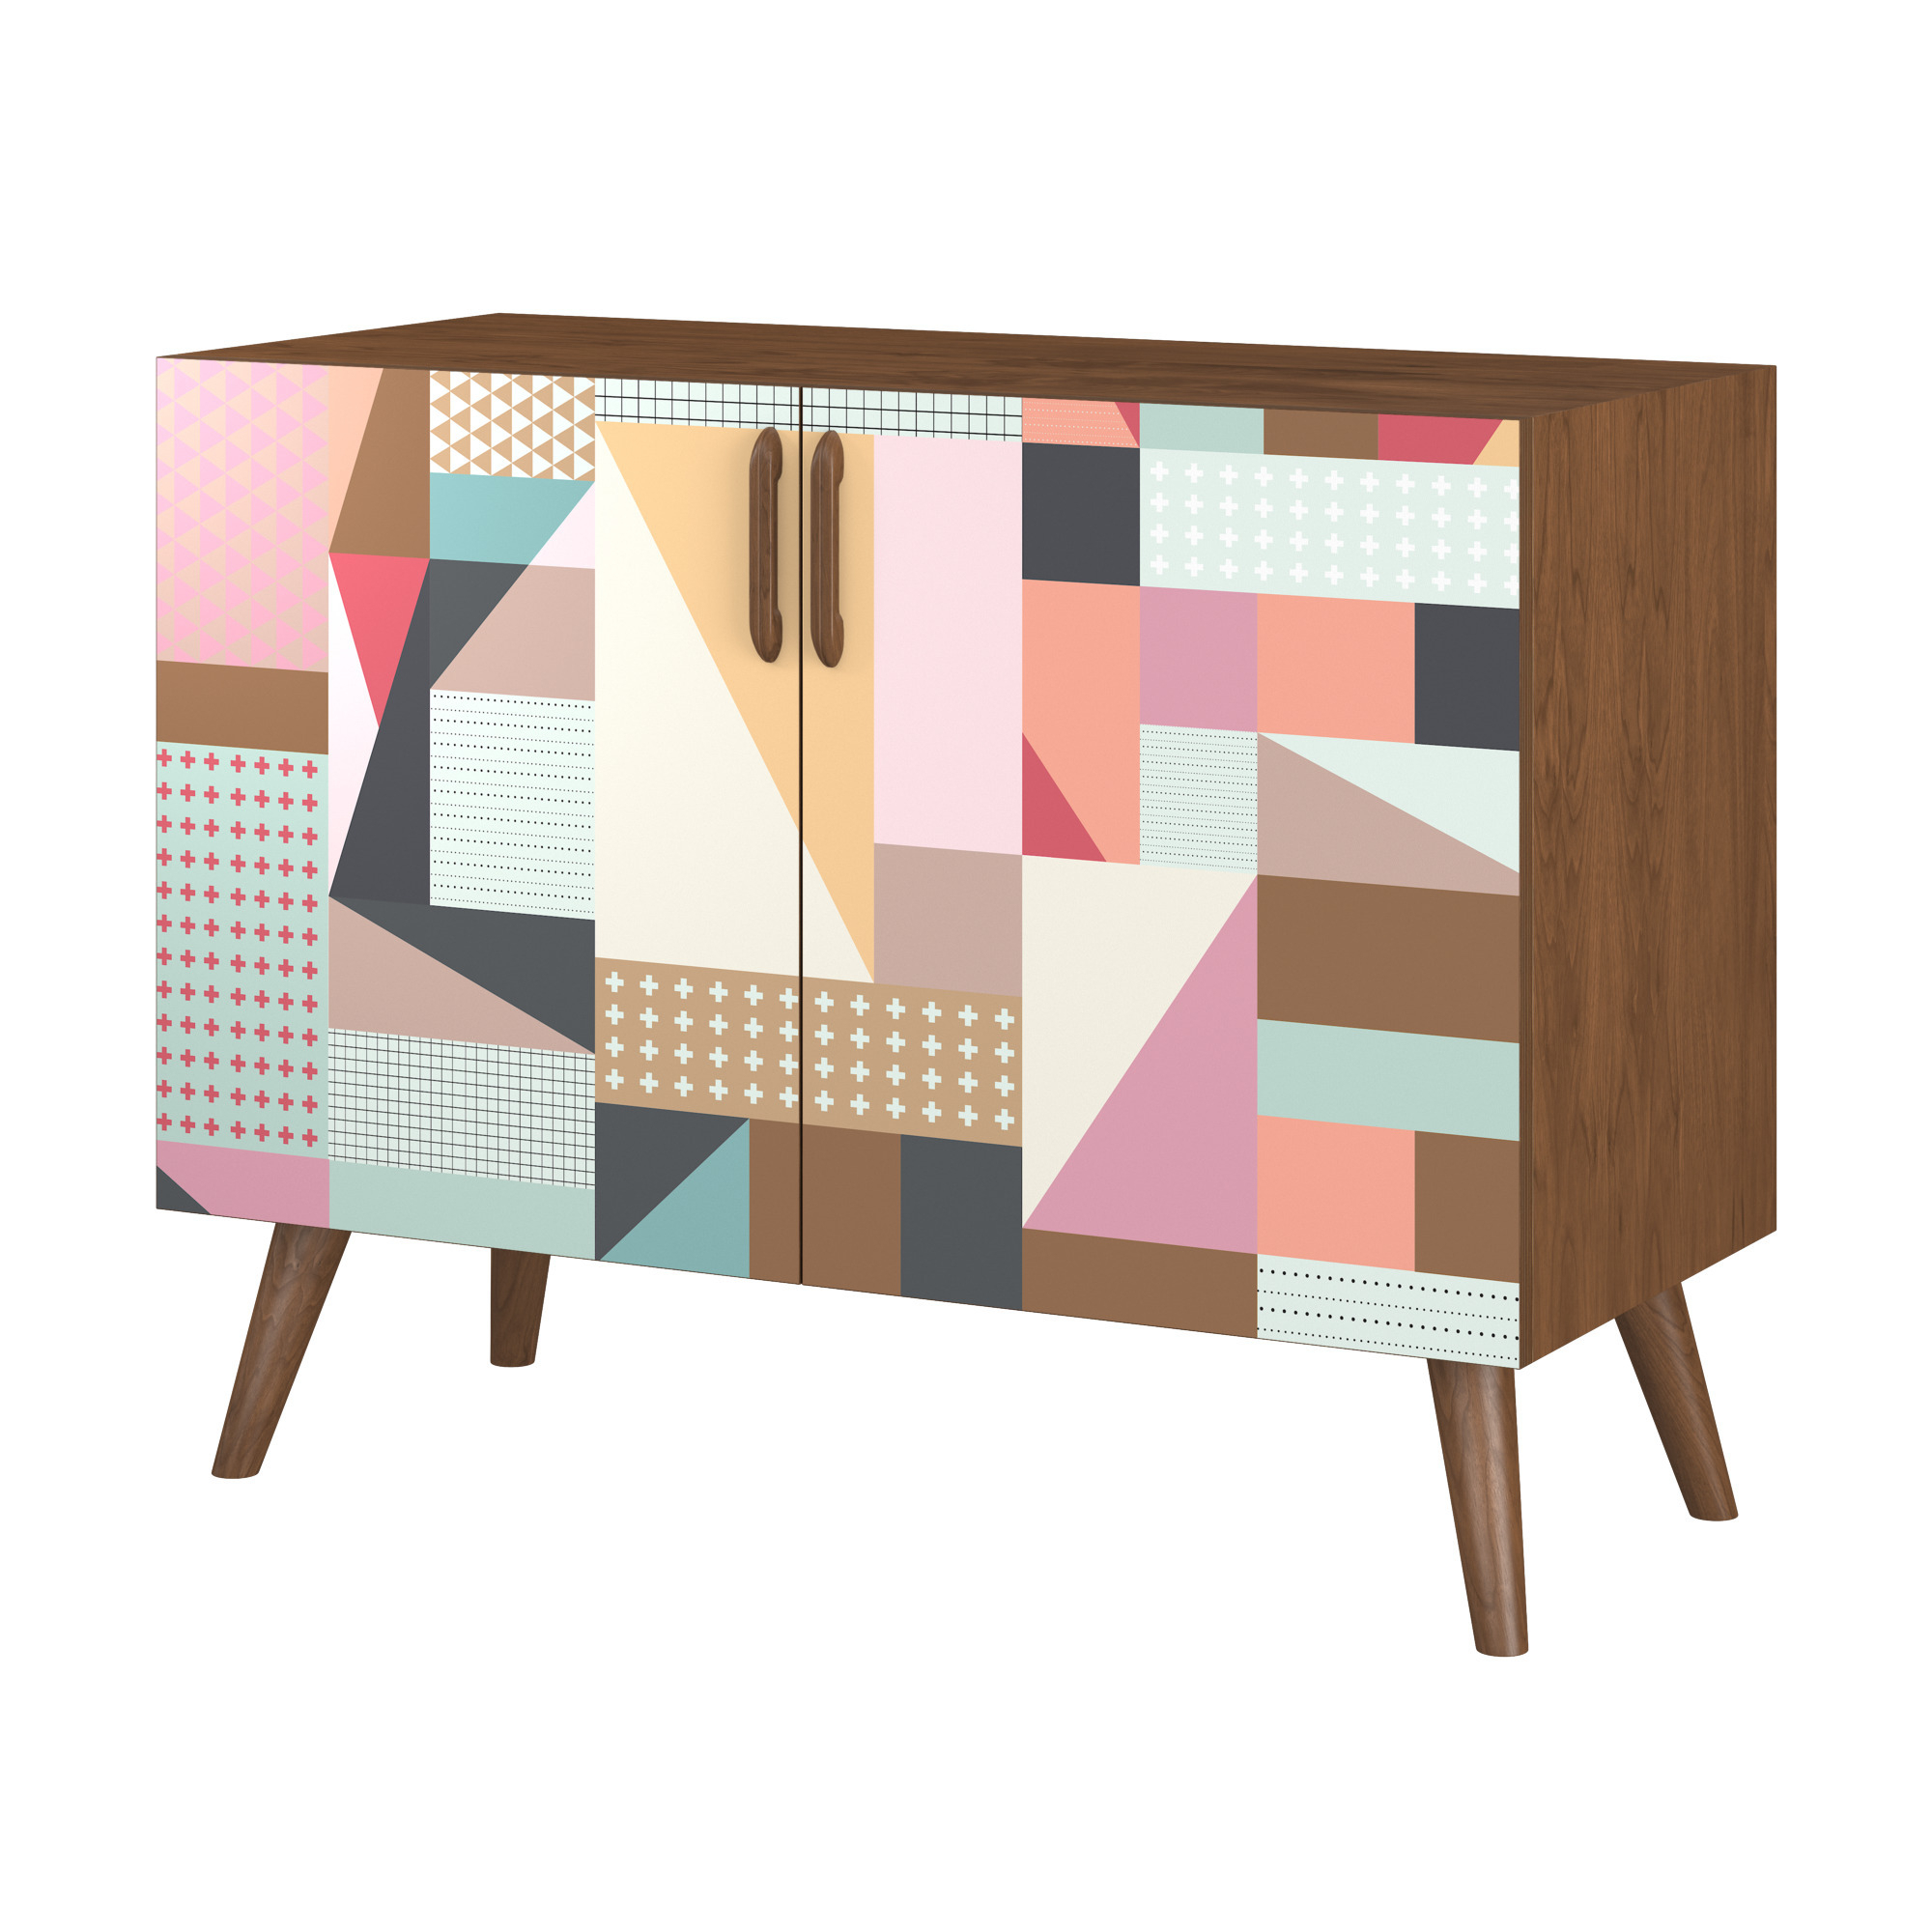 Customize Credenzas   Snugsquare Throughout Bright Angles Credenzas (View 7 of 20)